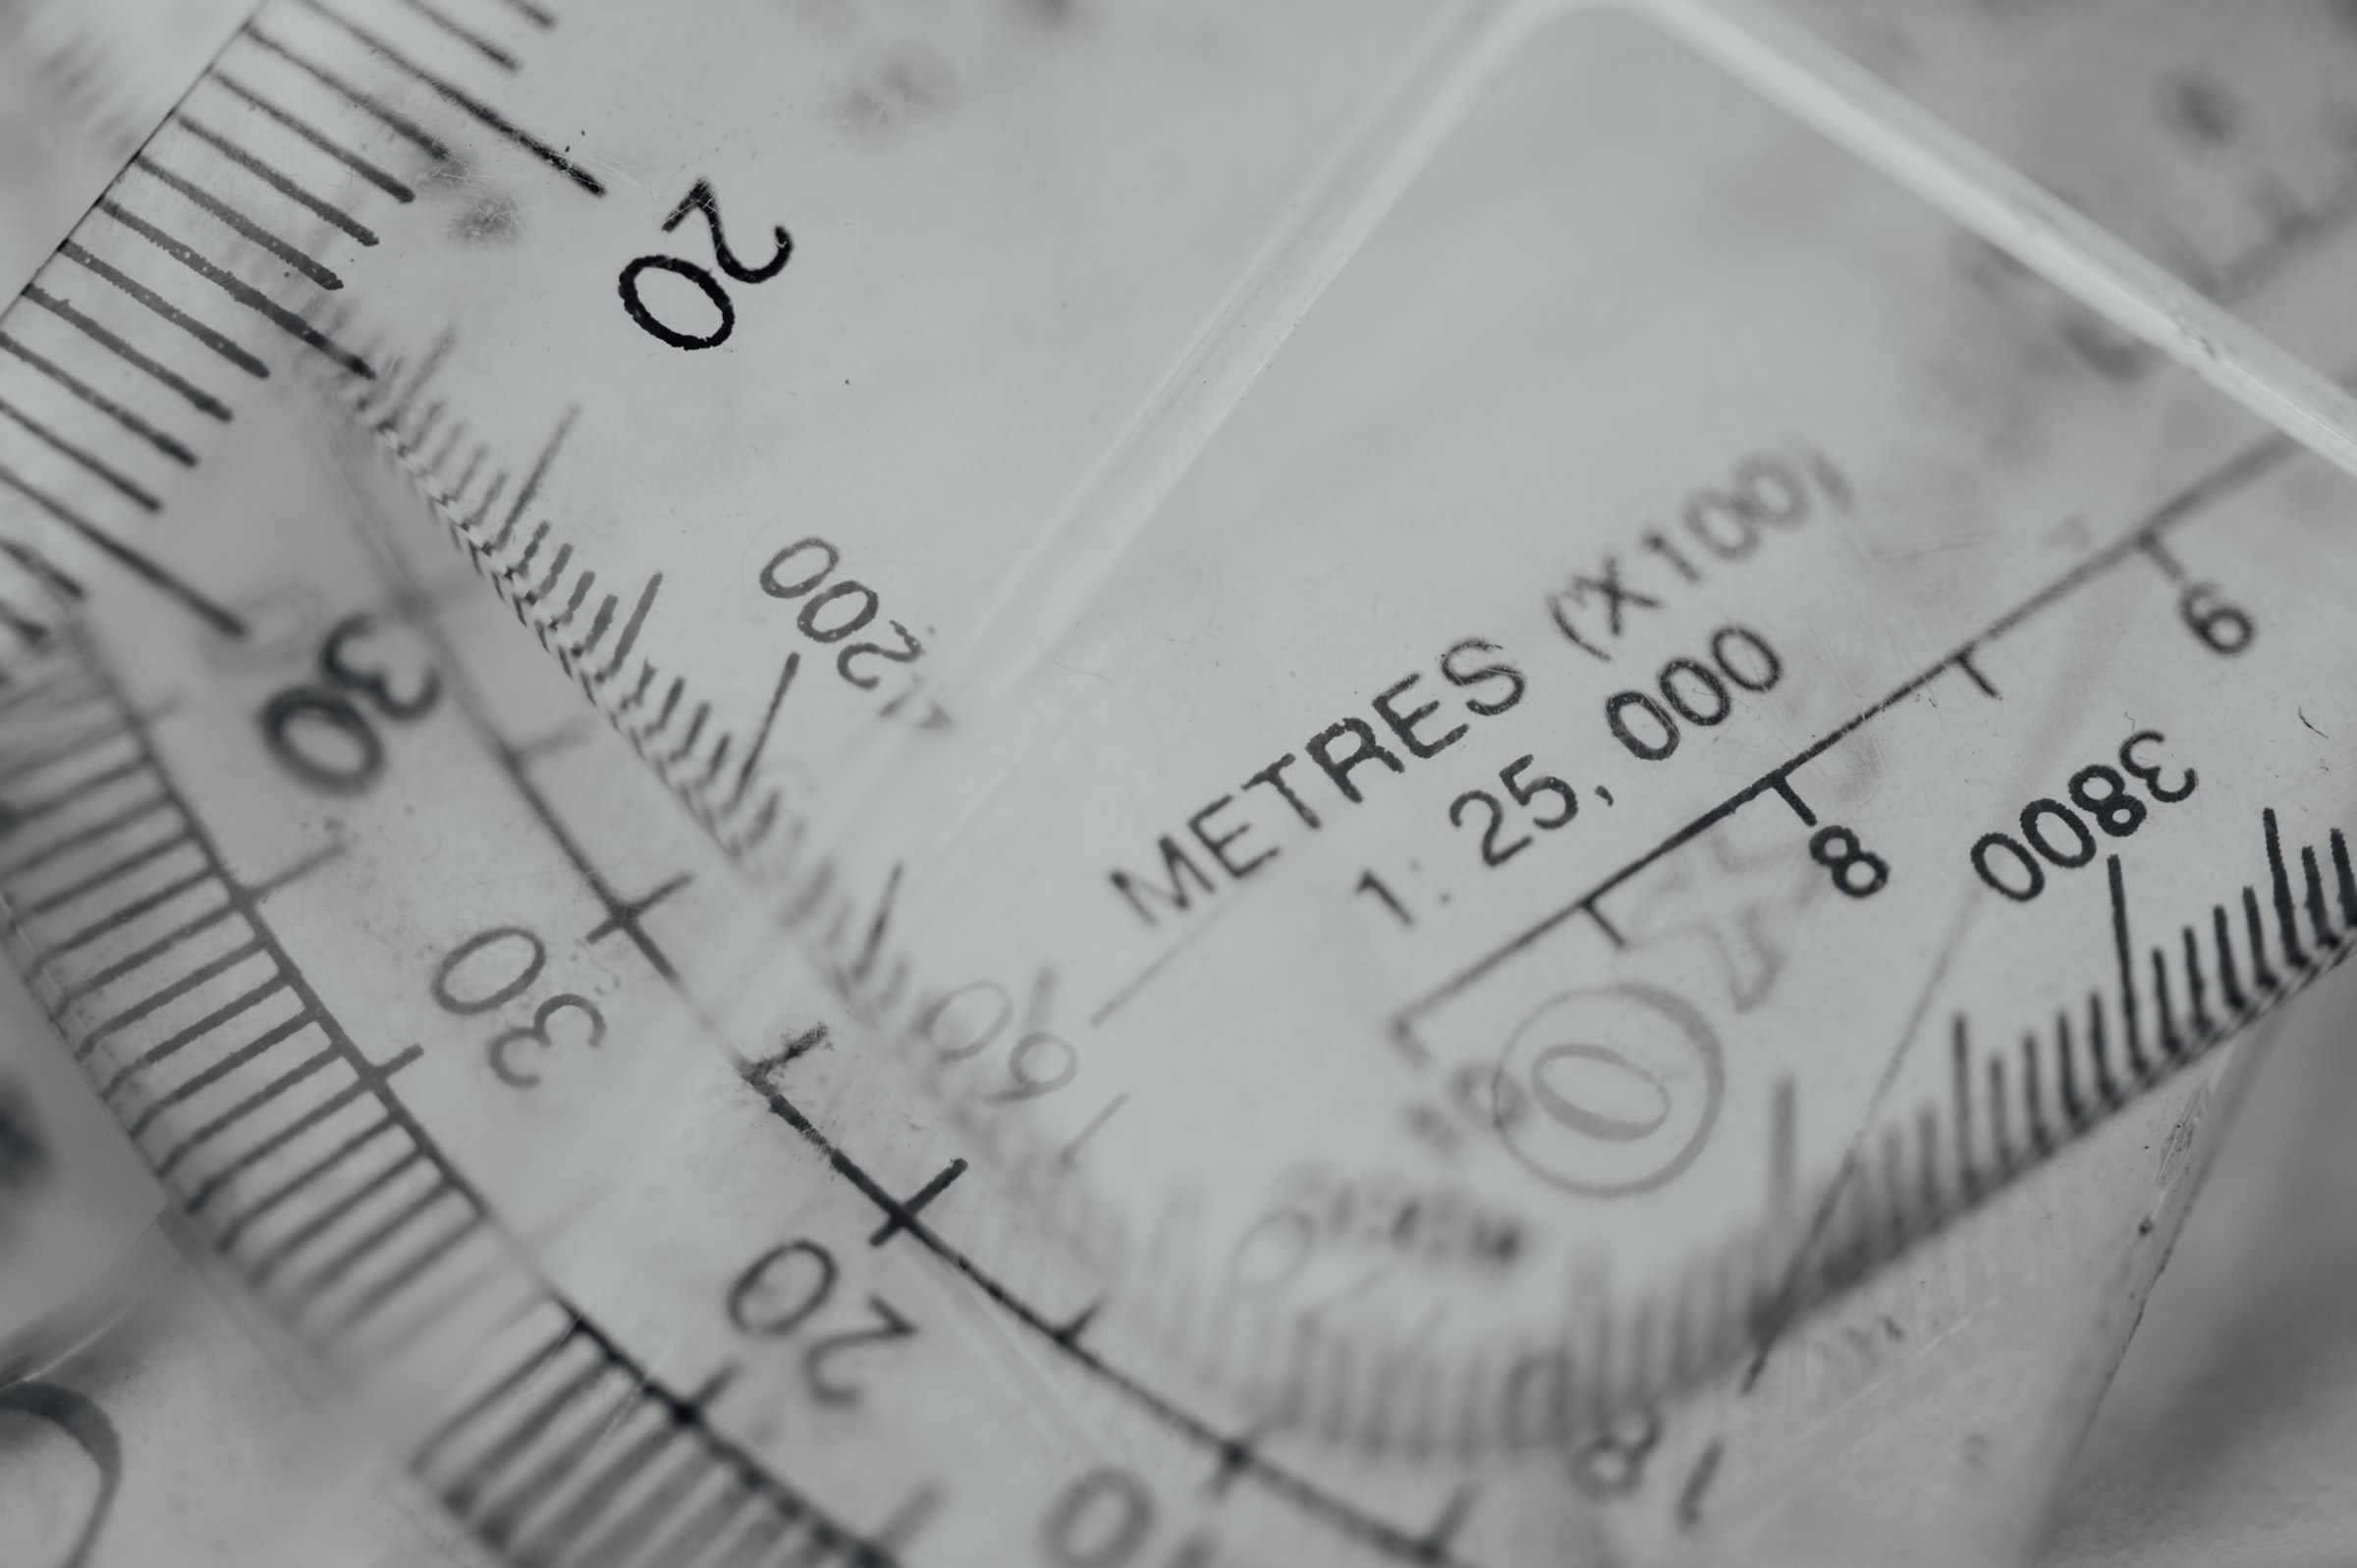 A lot of transparent rulers